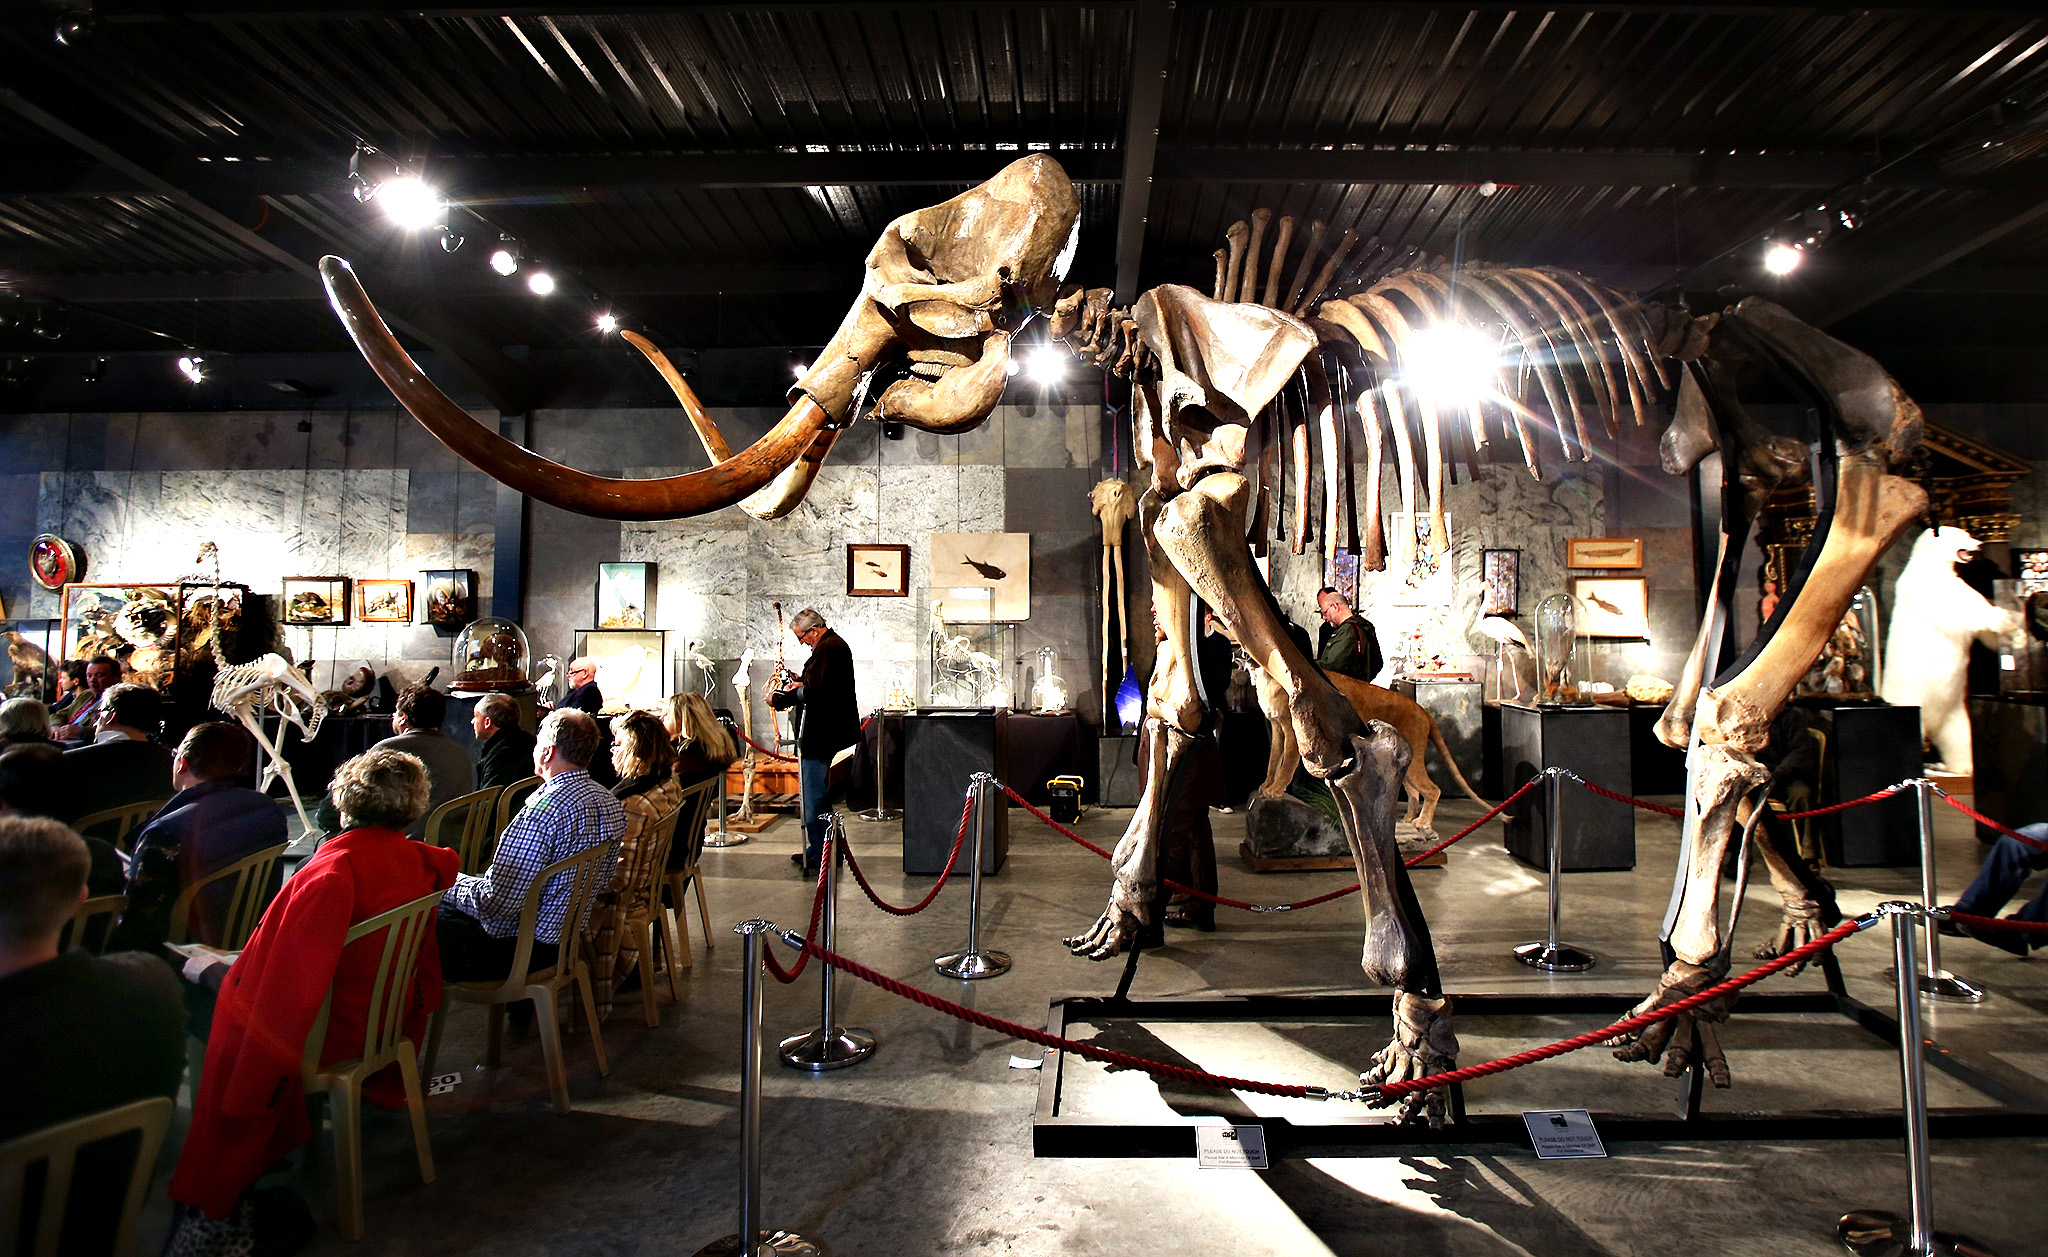 A woolly mammoth skeleton is displayed at Summers Place Auctions on November 26, 2014 in Billingshurst, England. The ice age mammoth skeleton, complete with tusks, fetched  189,000 to a telephone bidder. The woolly mammoth died out about 10,000 years ago. Errol Fuller, the curator of the sale, said: 'This is a virtually complete Mammoth skeleton with beautiful tusks, which makes it particularly rare. Its impressive size of 3.5 metres  (11'6) height and 5.5 metres (18') long, suggests it may be a male Mammoth and may have weighed up to six tonnes in its lifetime'.